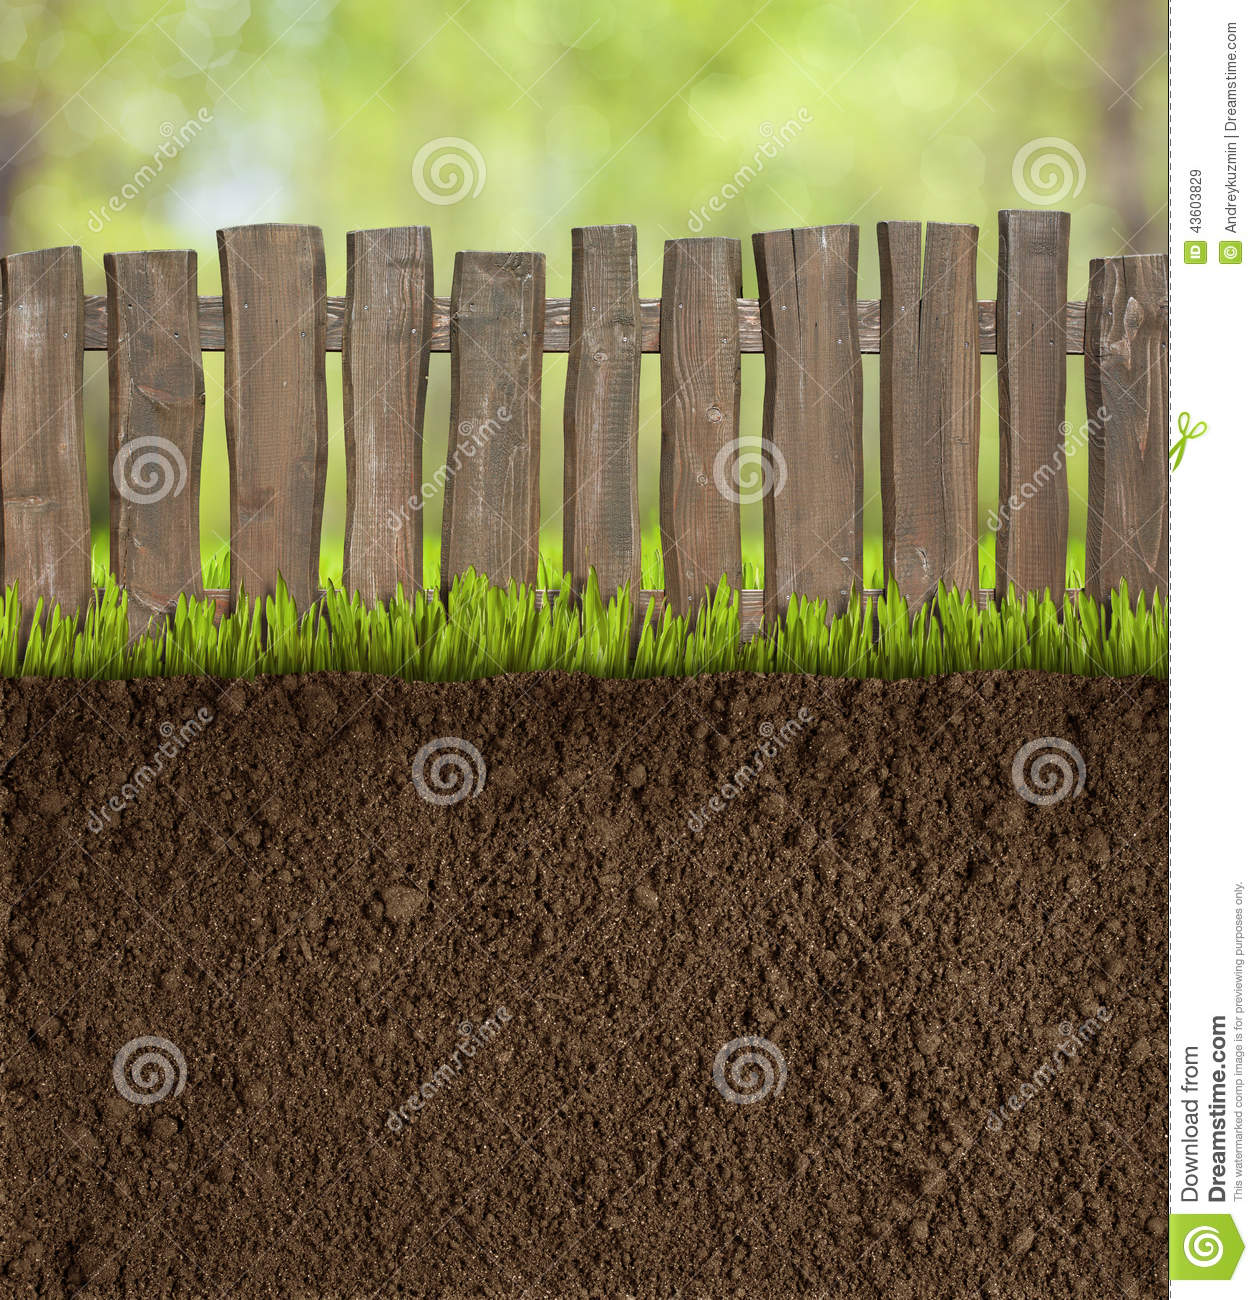 Sol de jardin avec la barri re en bois photo stock image for Barriere de jardin en bois